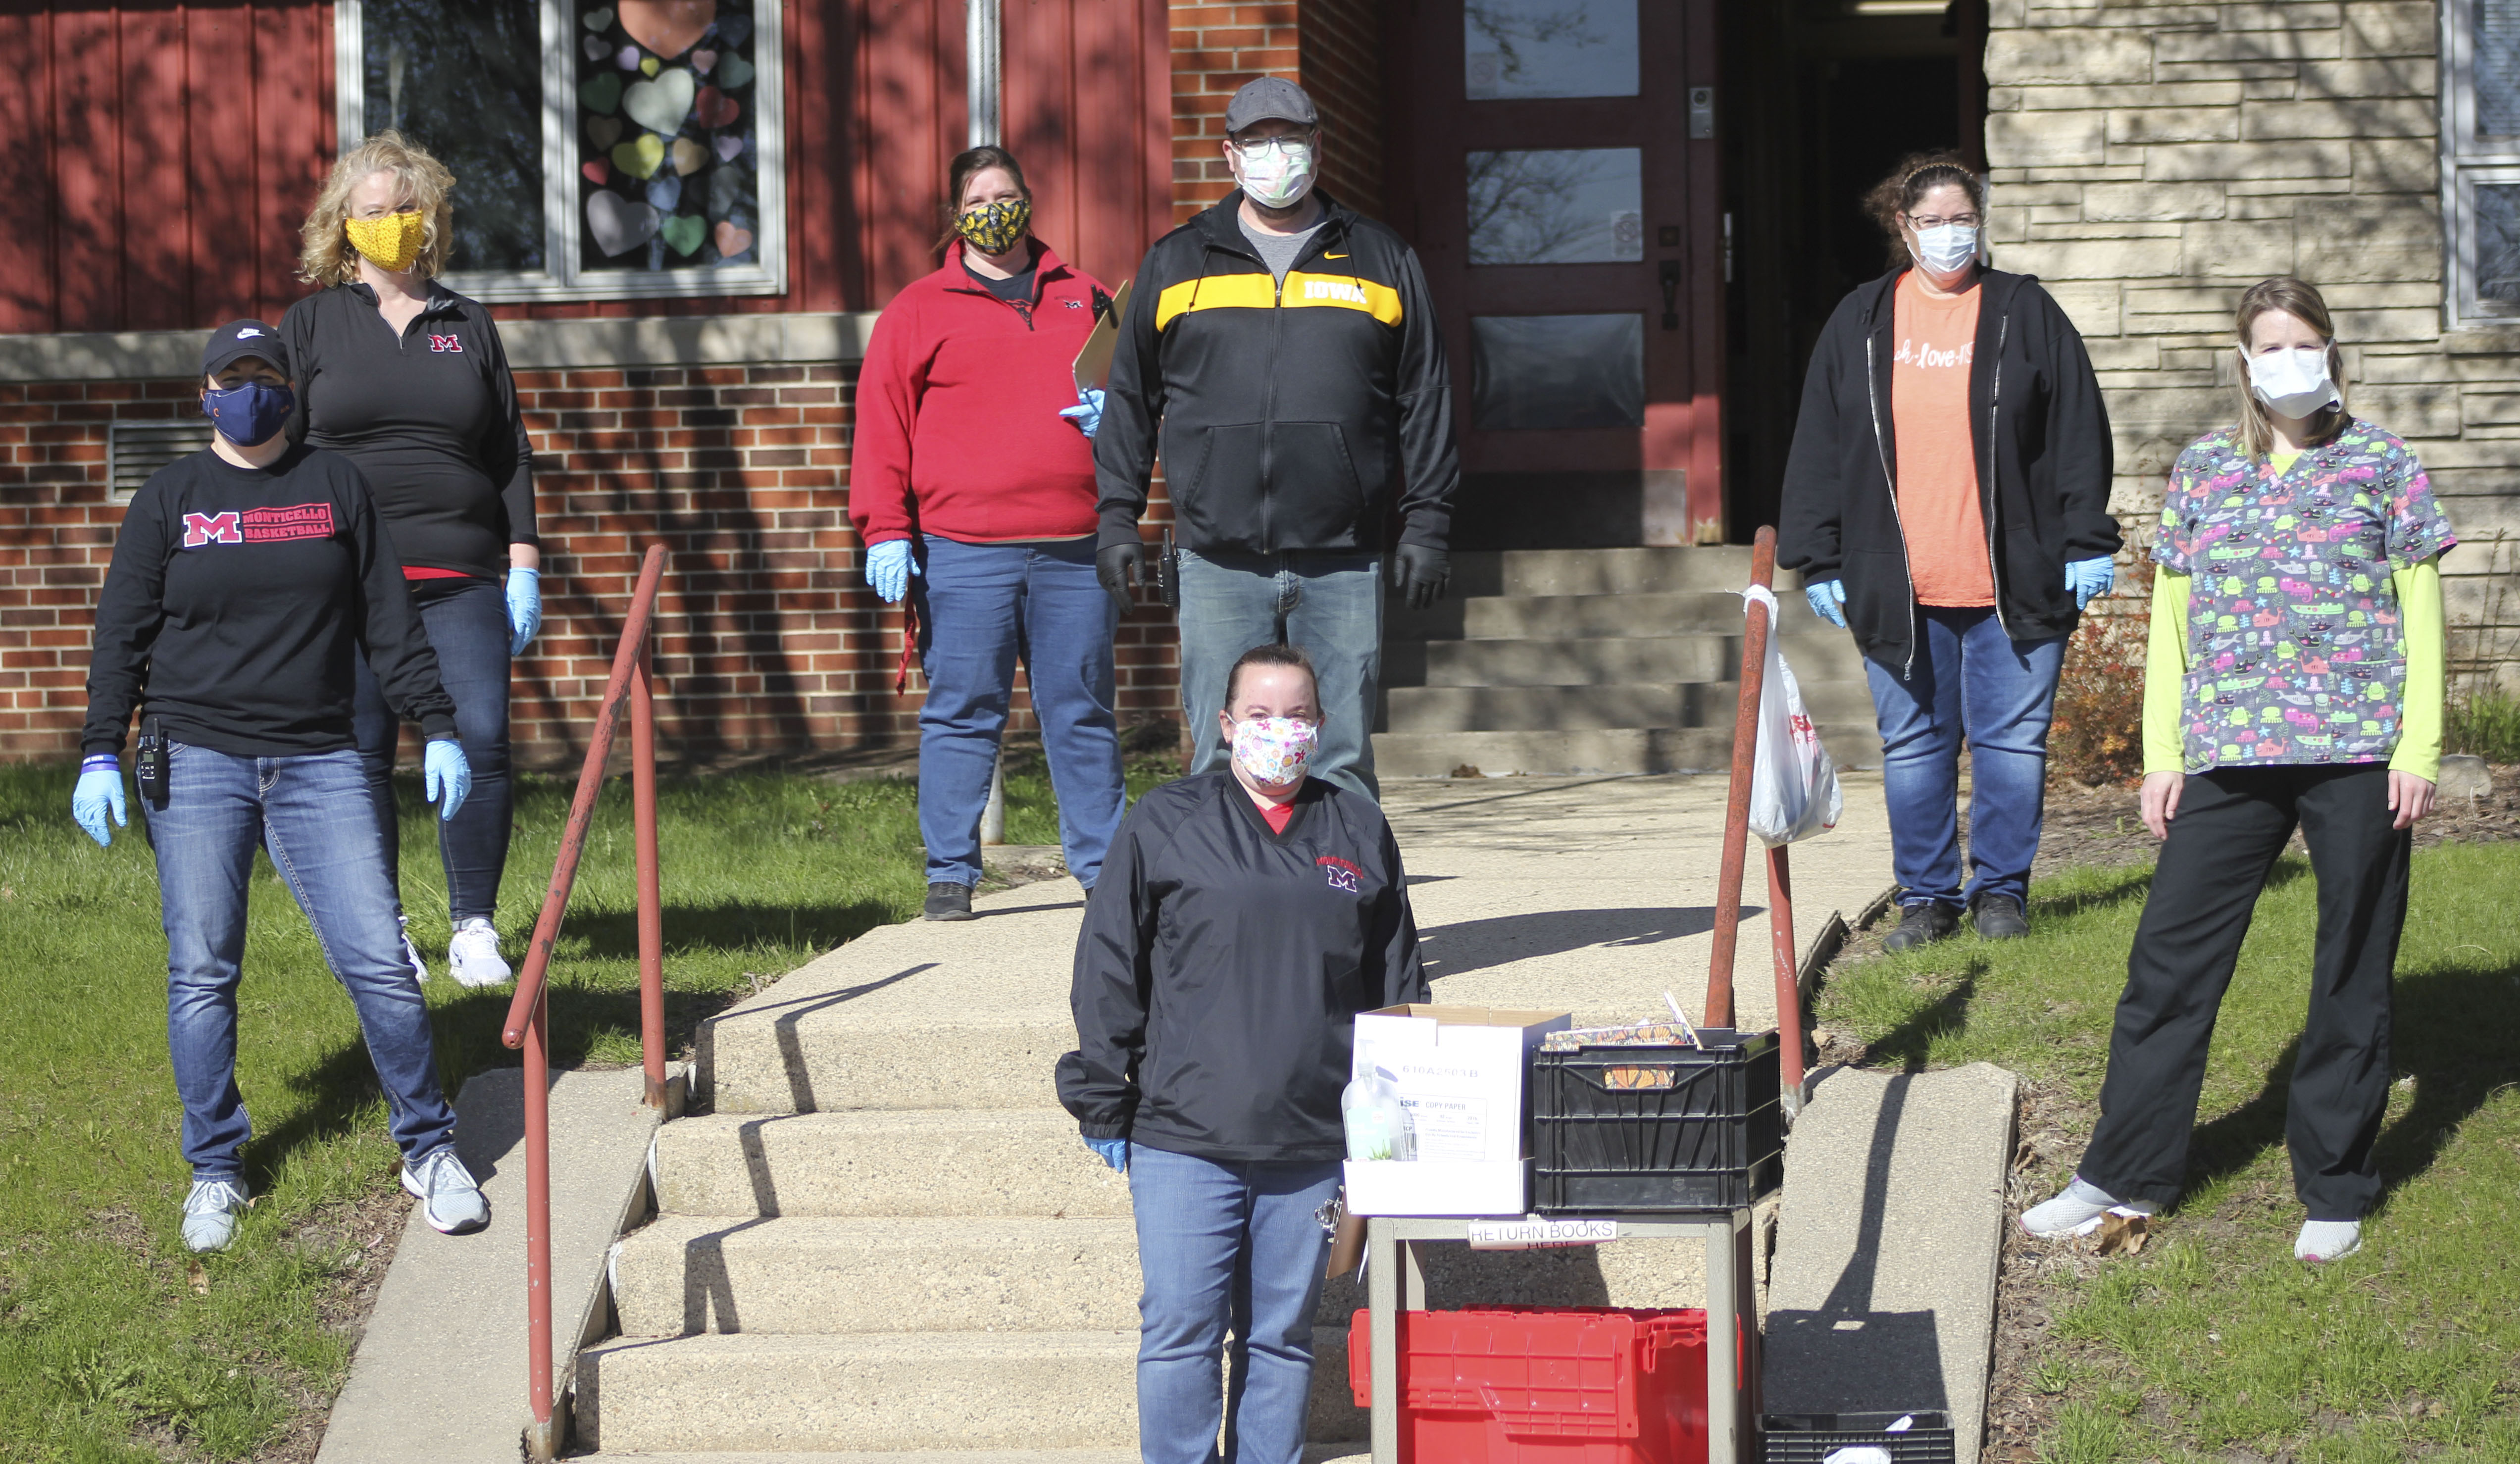 School district employees wear their masks and keep their distance as they wait to bring school supplies to Carpenter Elementary students. They are, front: Heather Hansen. Second row from left: Andrea Janssen, Karla Stahlberg, Robyn Ponder, Nick Thumma, Steph Isaac and Jennifer Speltz.